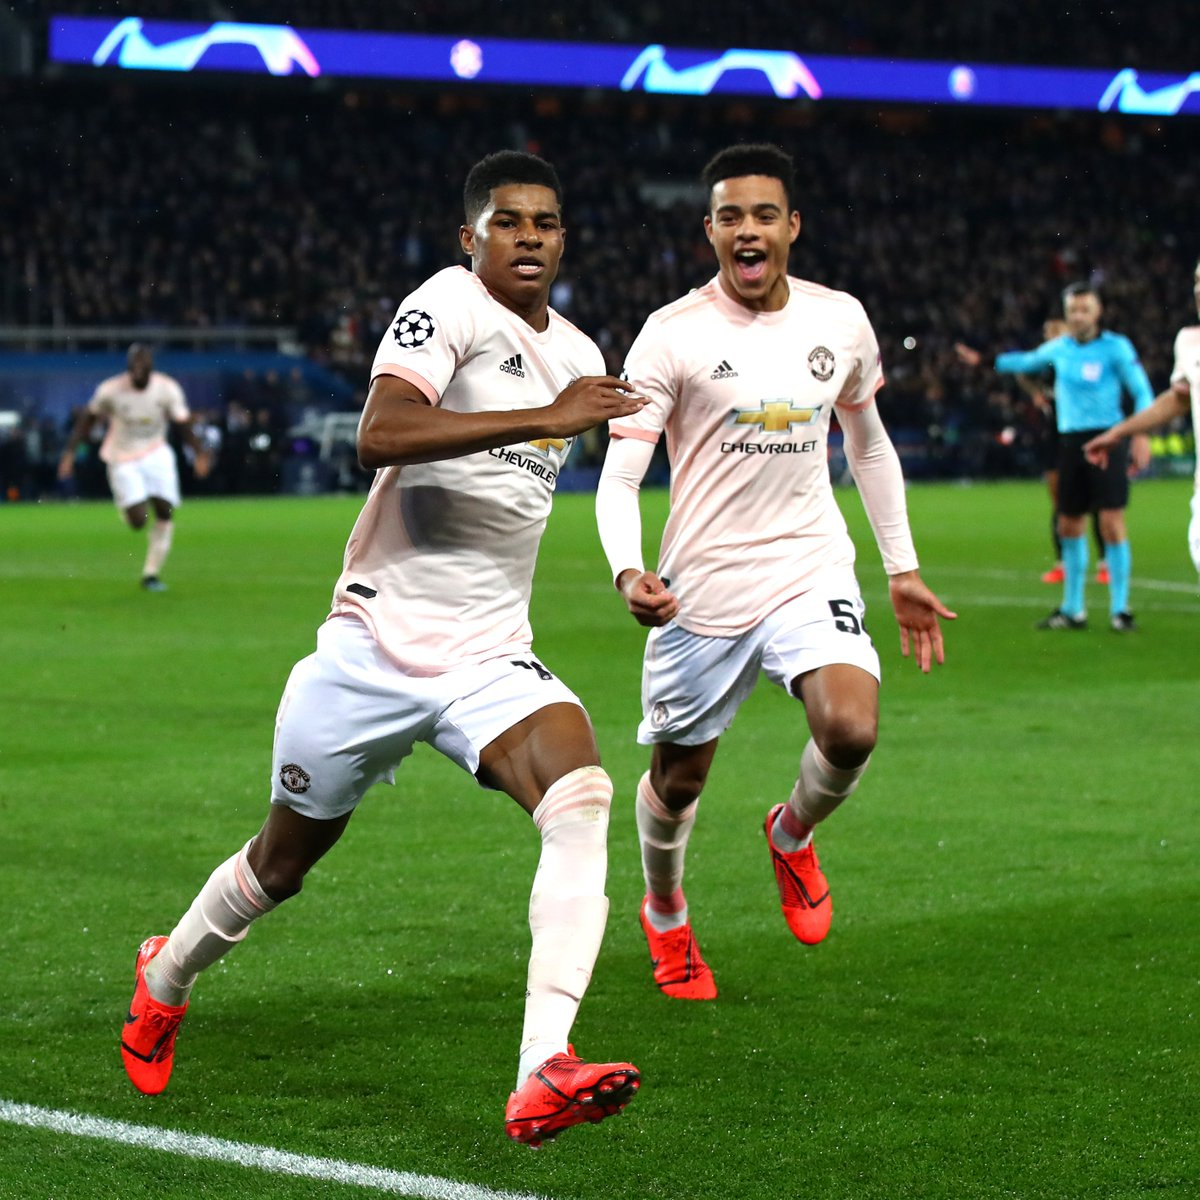 🗓️ 6 March 2019: @MarcusRashford wins it late in Paris. 🗓️ 20 October 2020: @MarcusRashford wins it late in Paris again.  Just what the Doctor ordered 😉  #MUFC #UCL